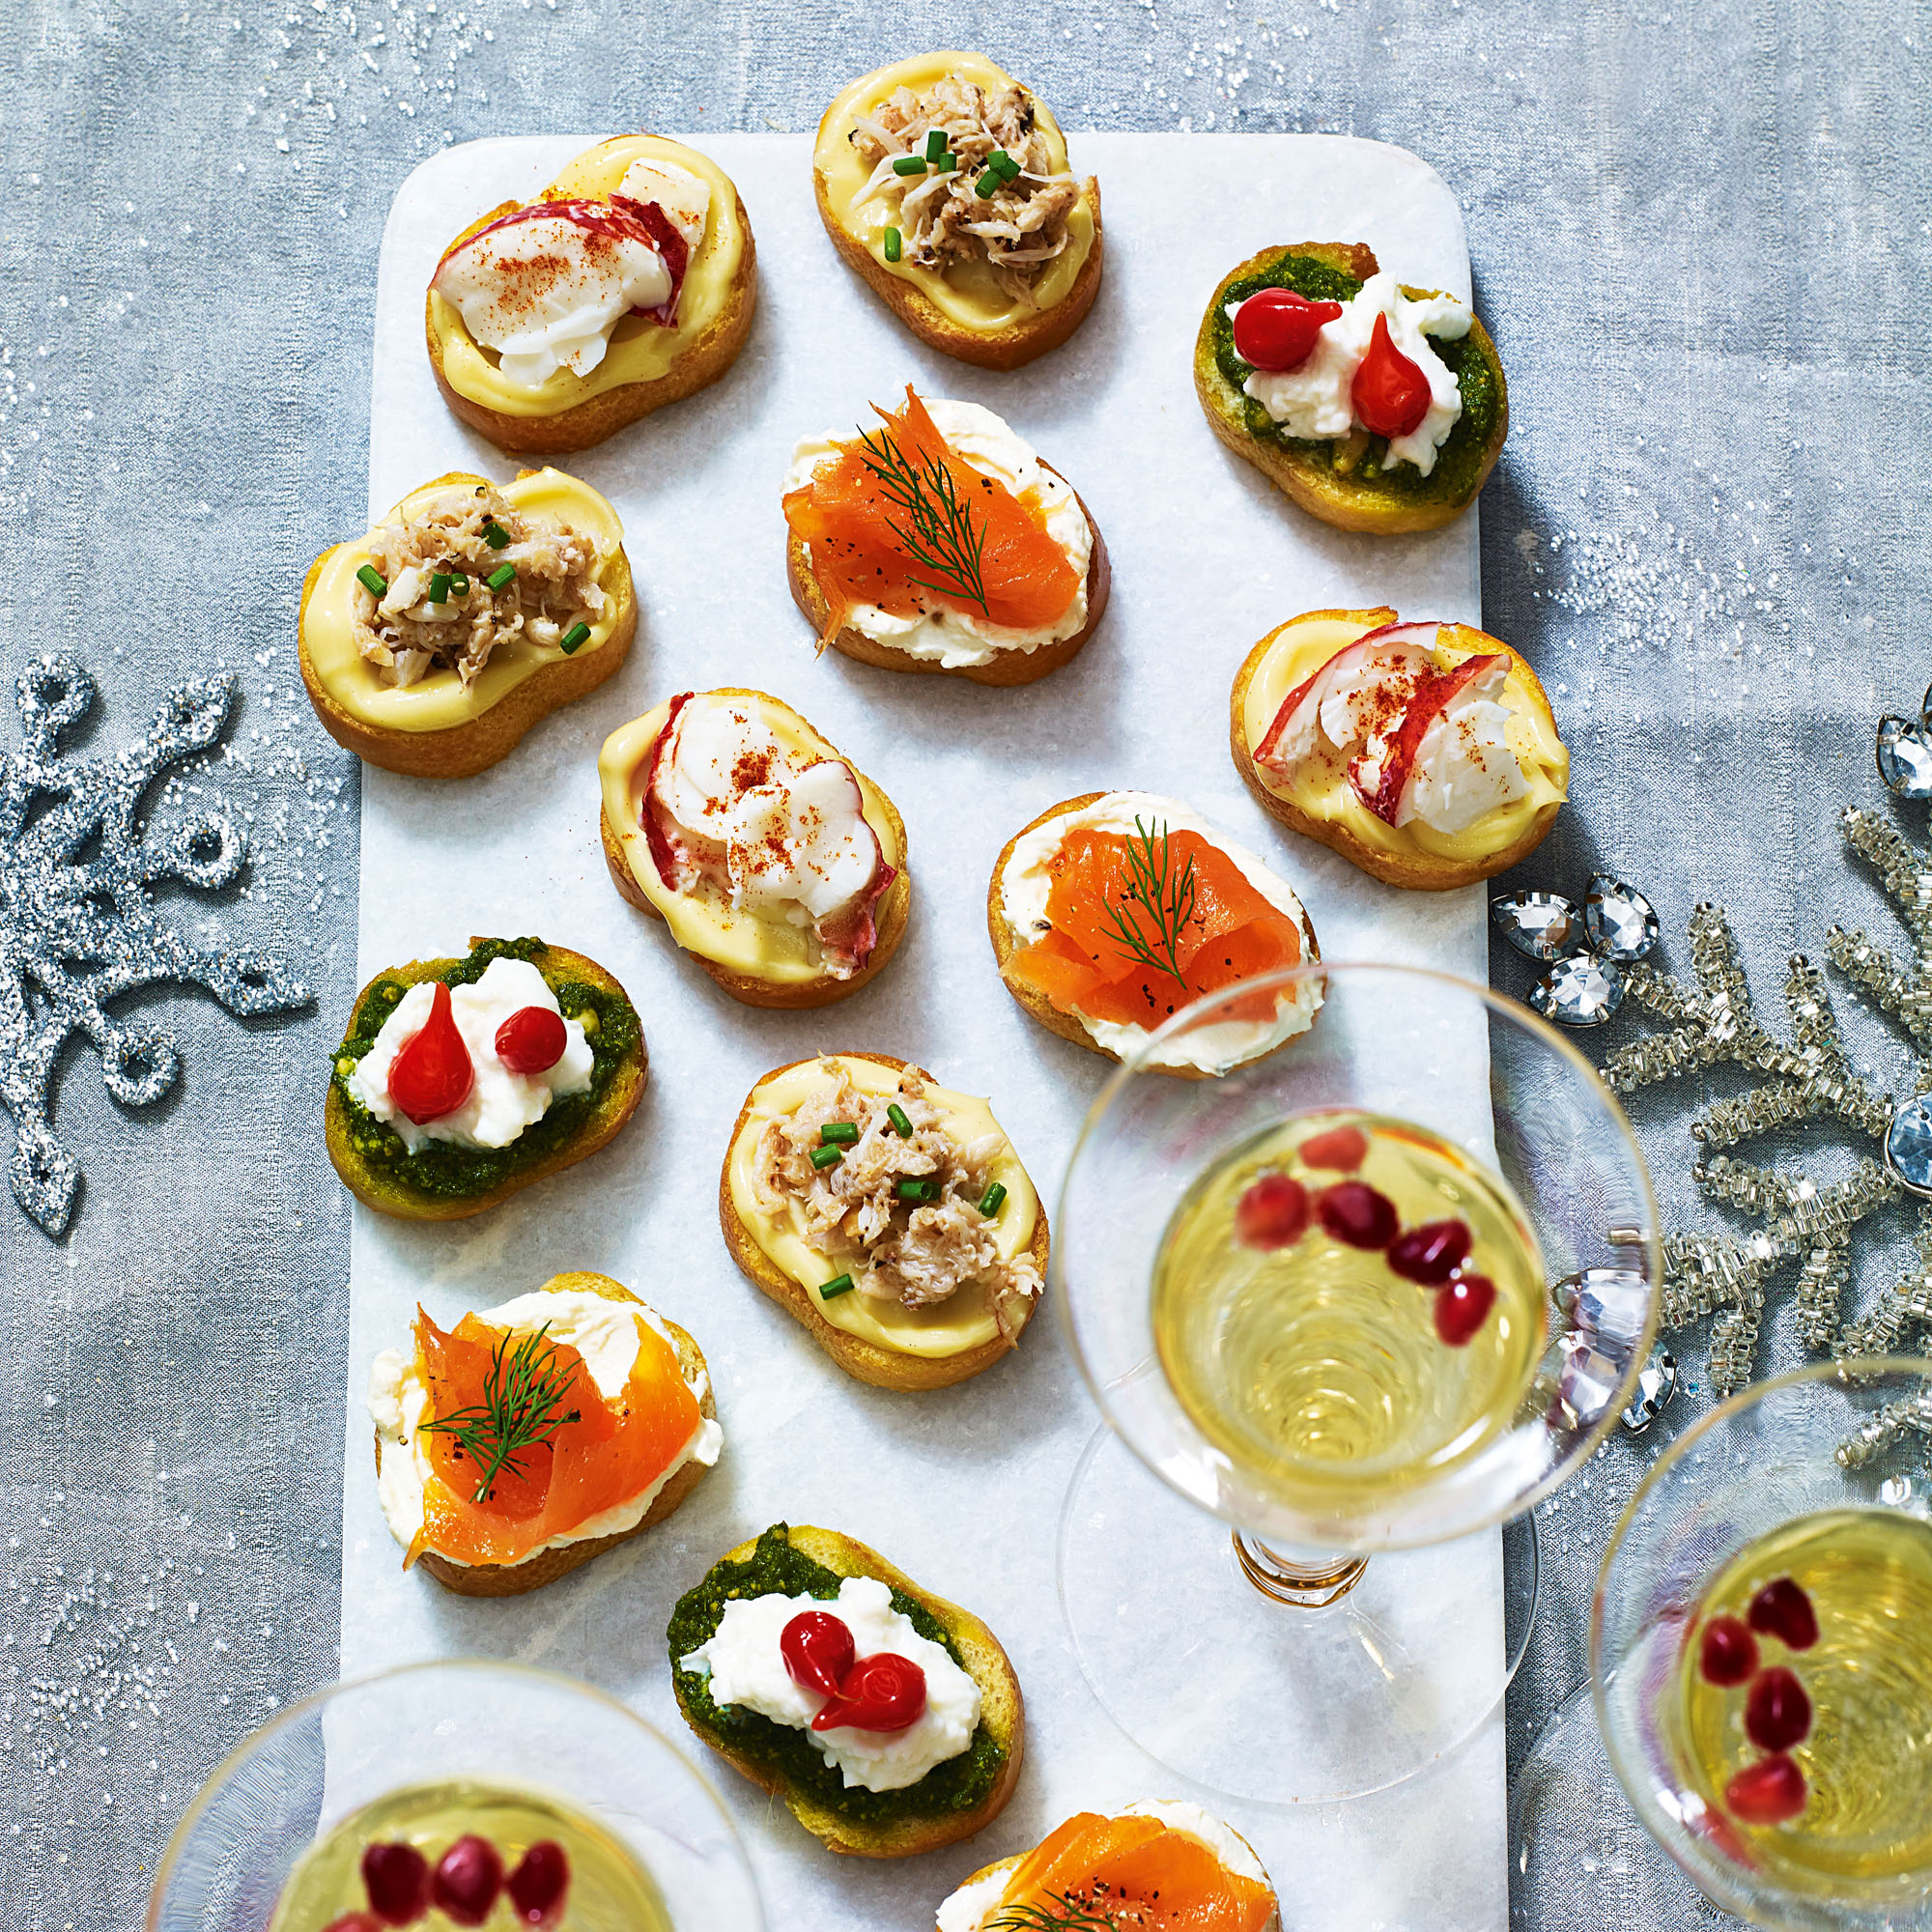 Be the perfect host by making some of these mouthwatering crostinis